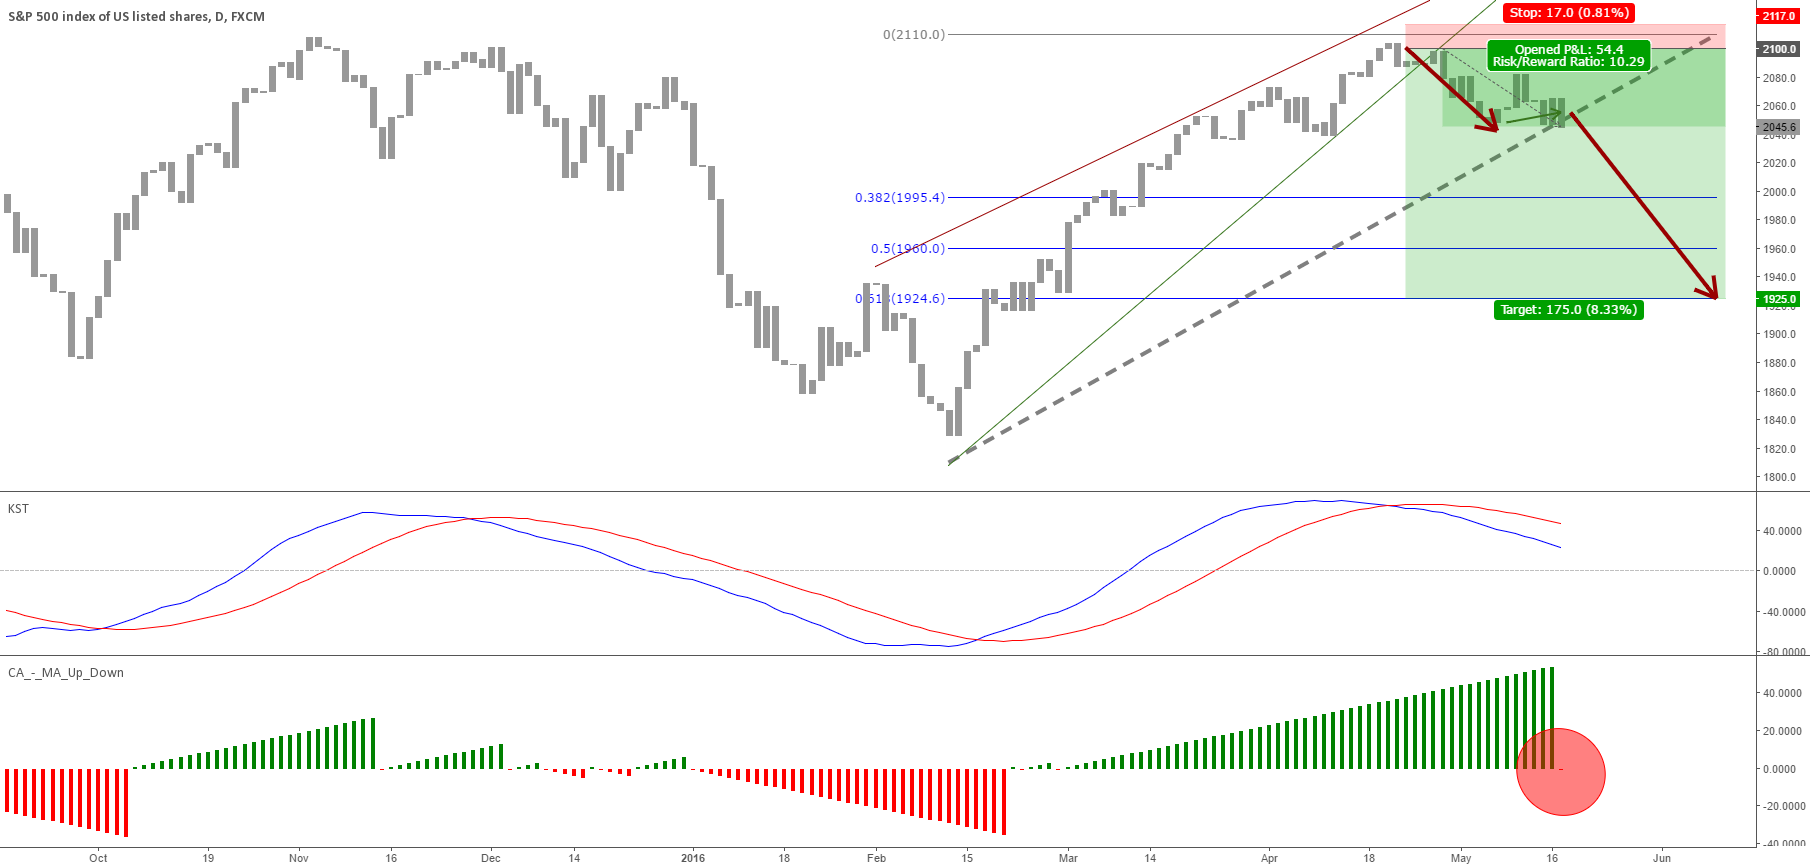 S&P 500 downtrend accelerates in May